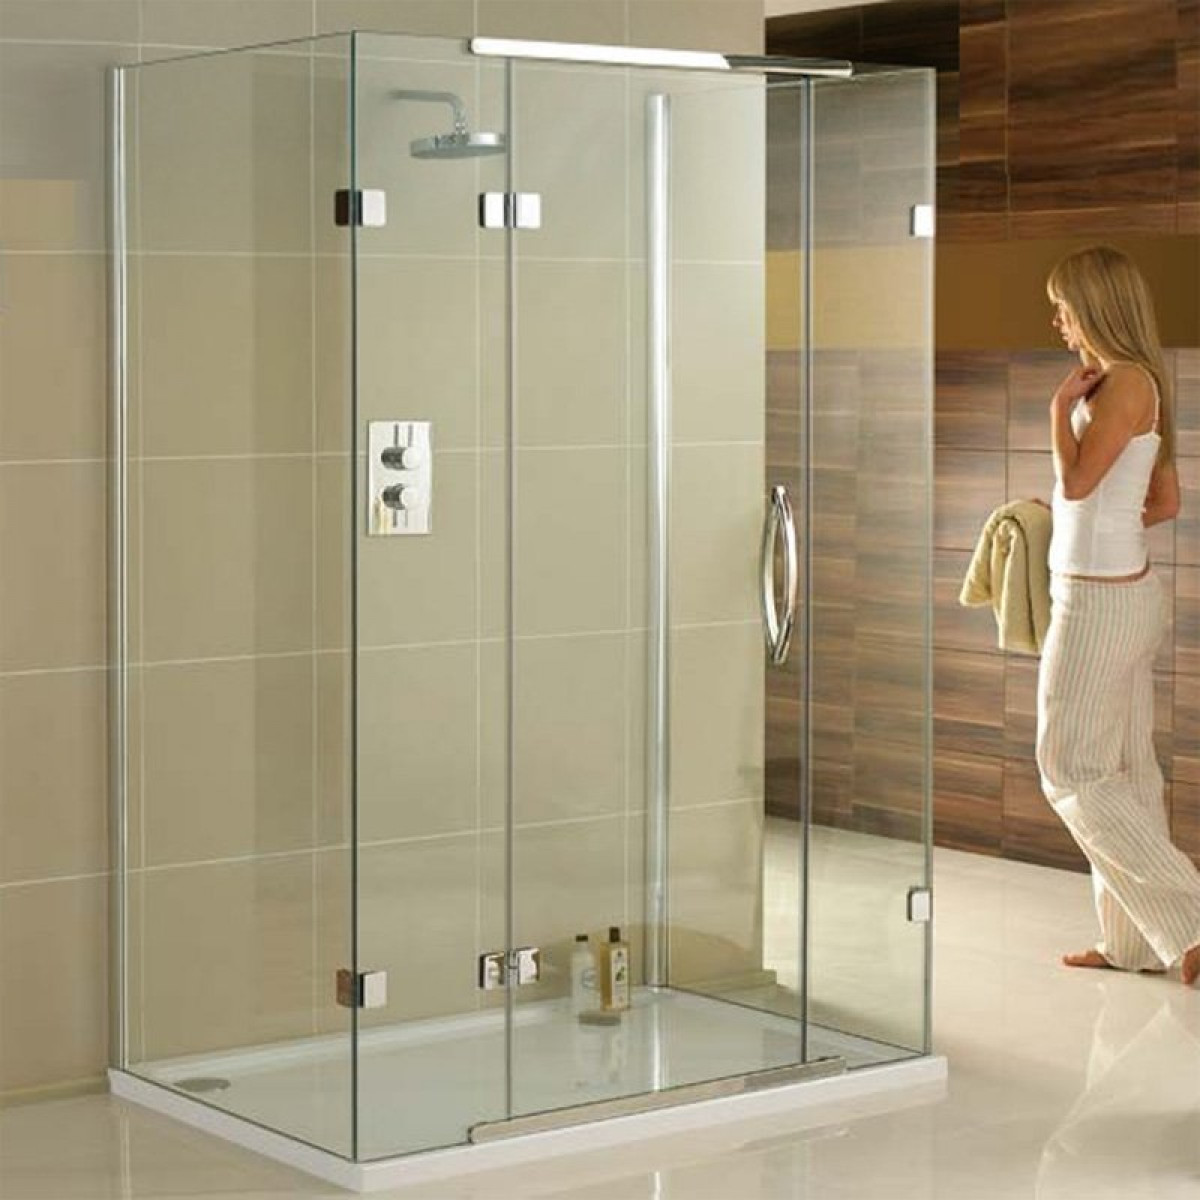 mirrors for bathrooms aquadart 1200 x 900mm 3 sided shower enclosure 13704